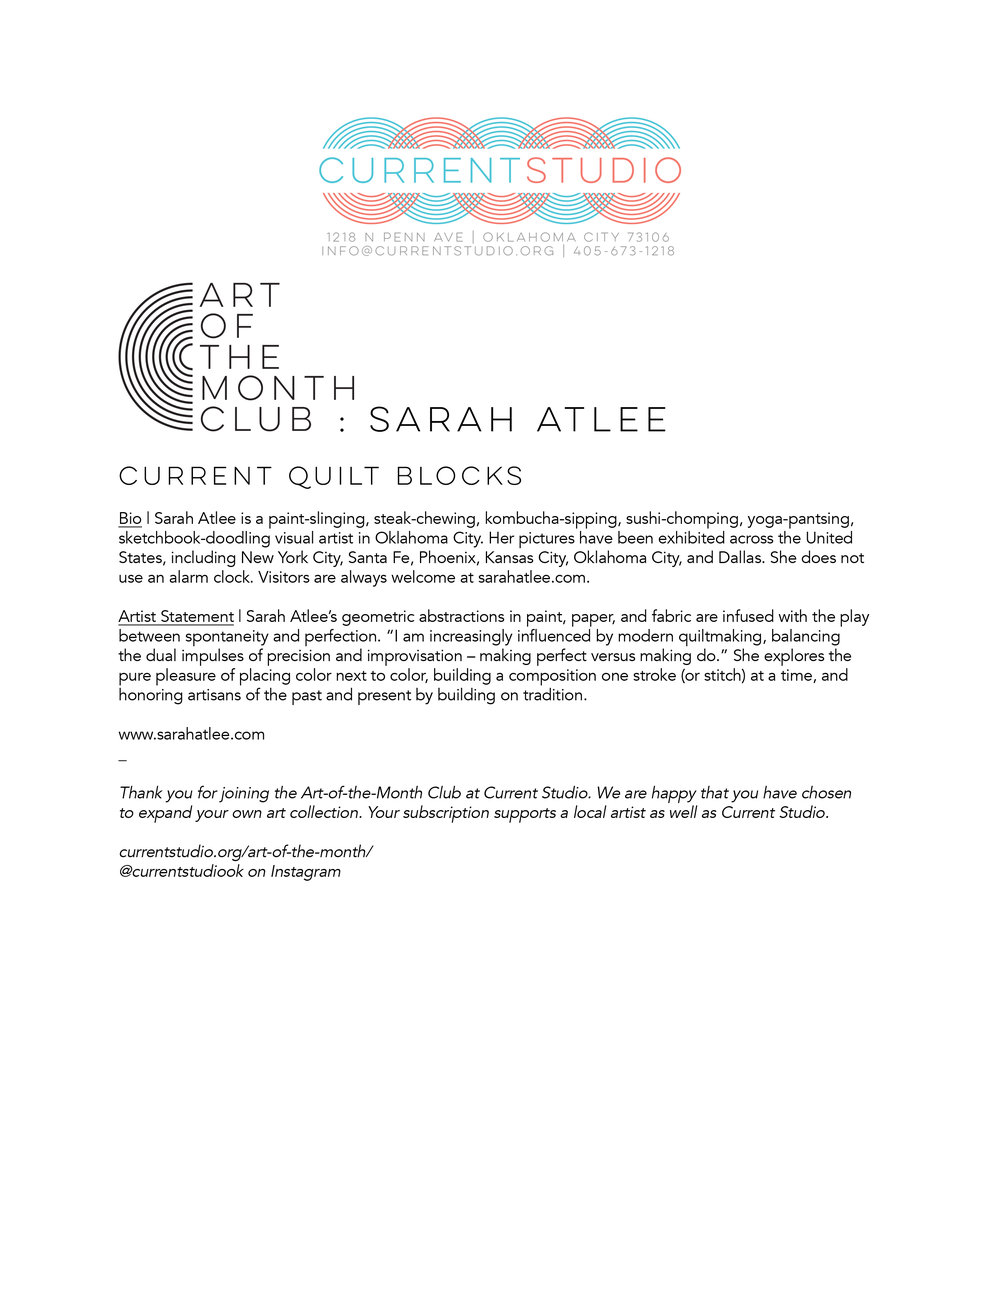 art of the month artist sheet - sarah atlee.jpg